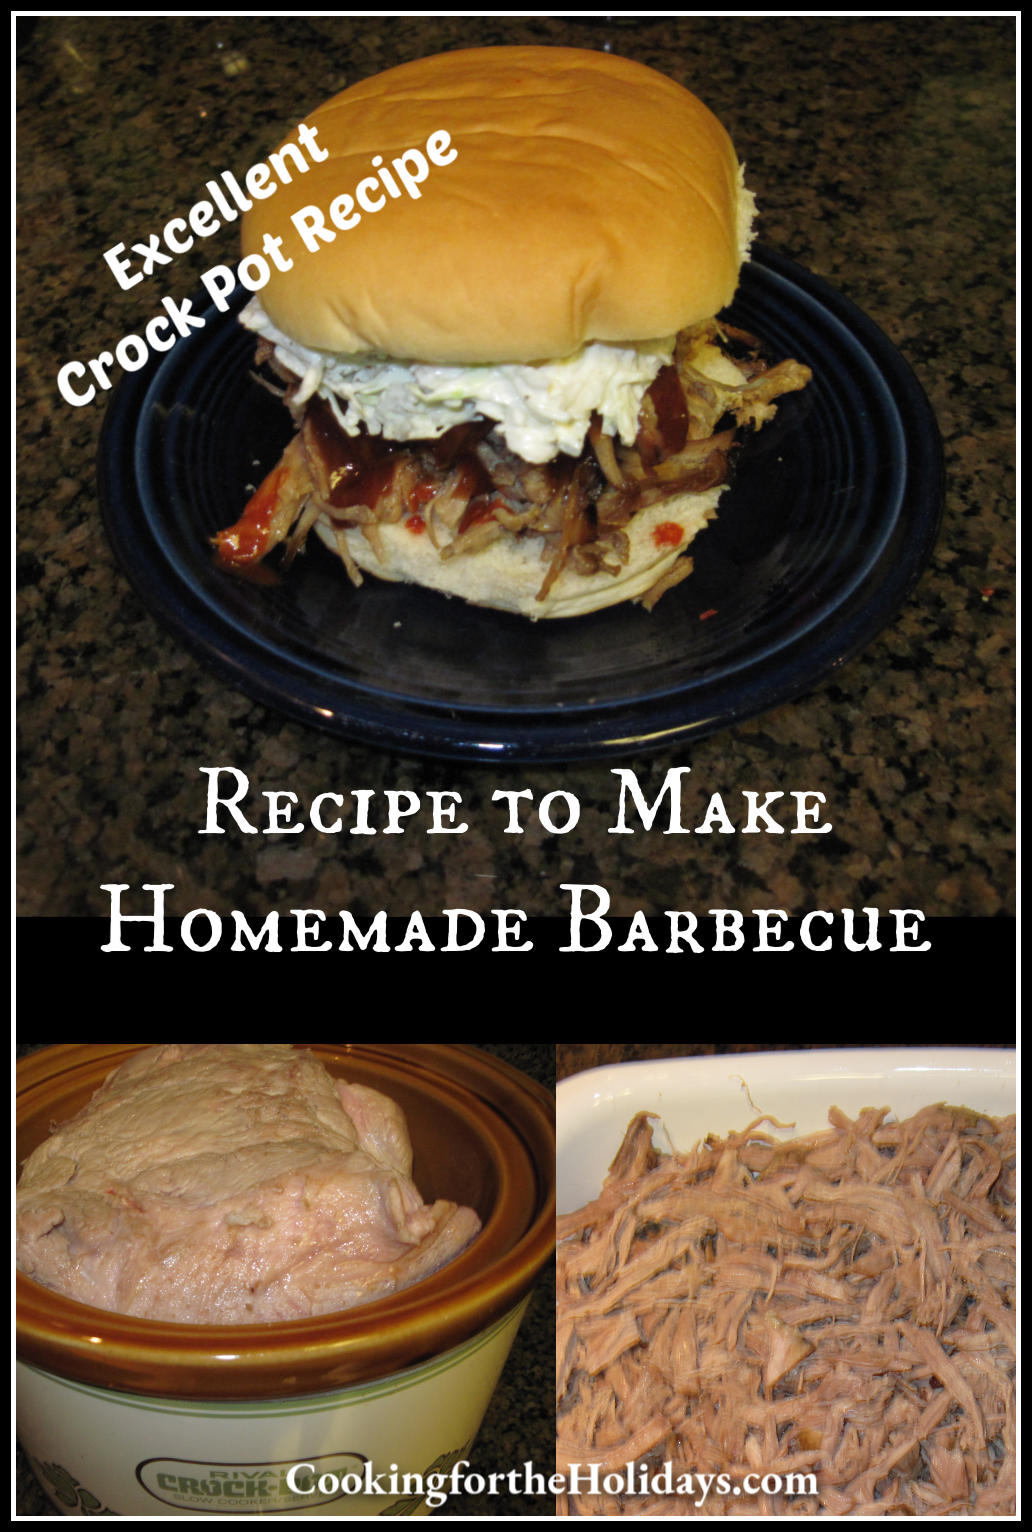 Barbecue Recipe